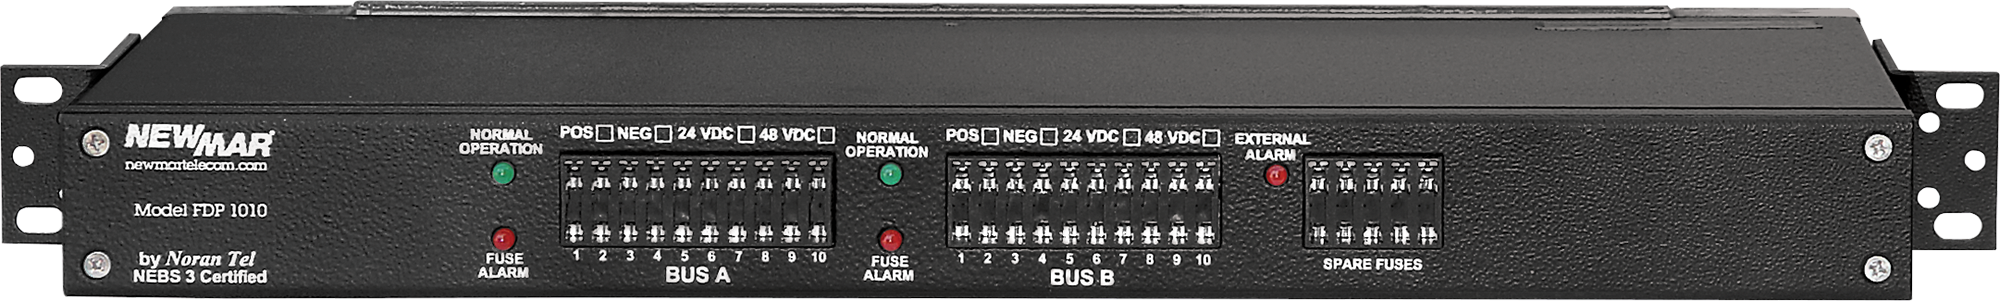 Fuse_Distribution_Panel